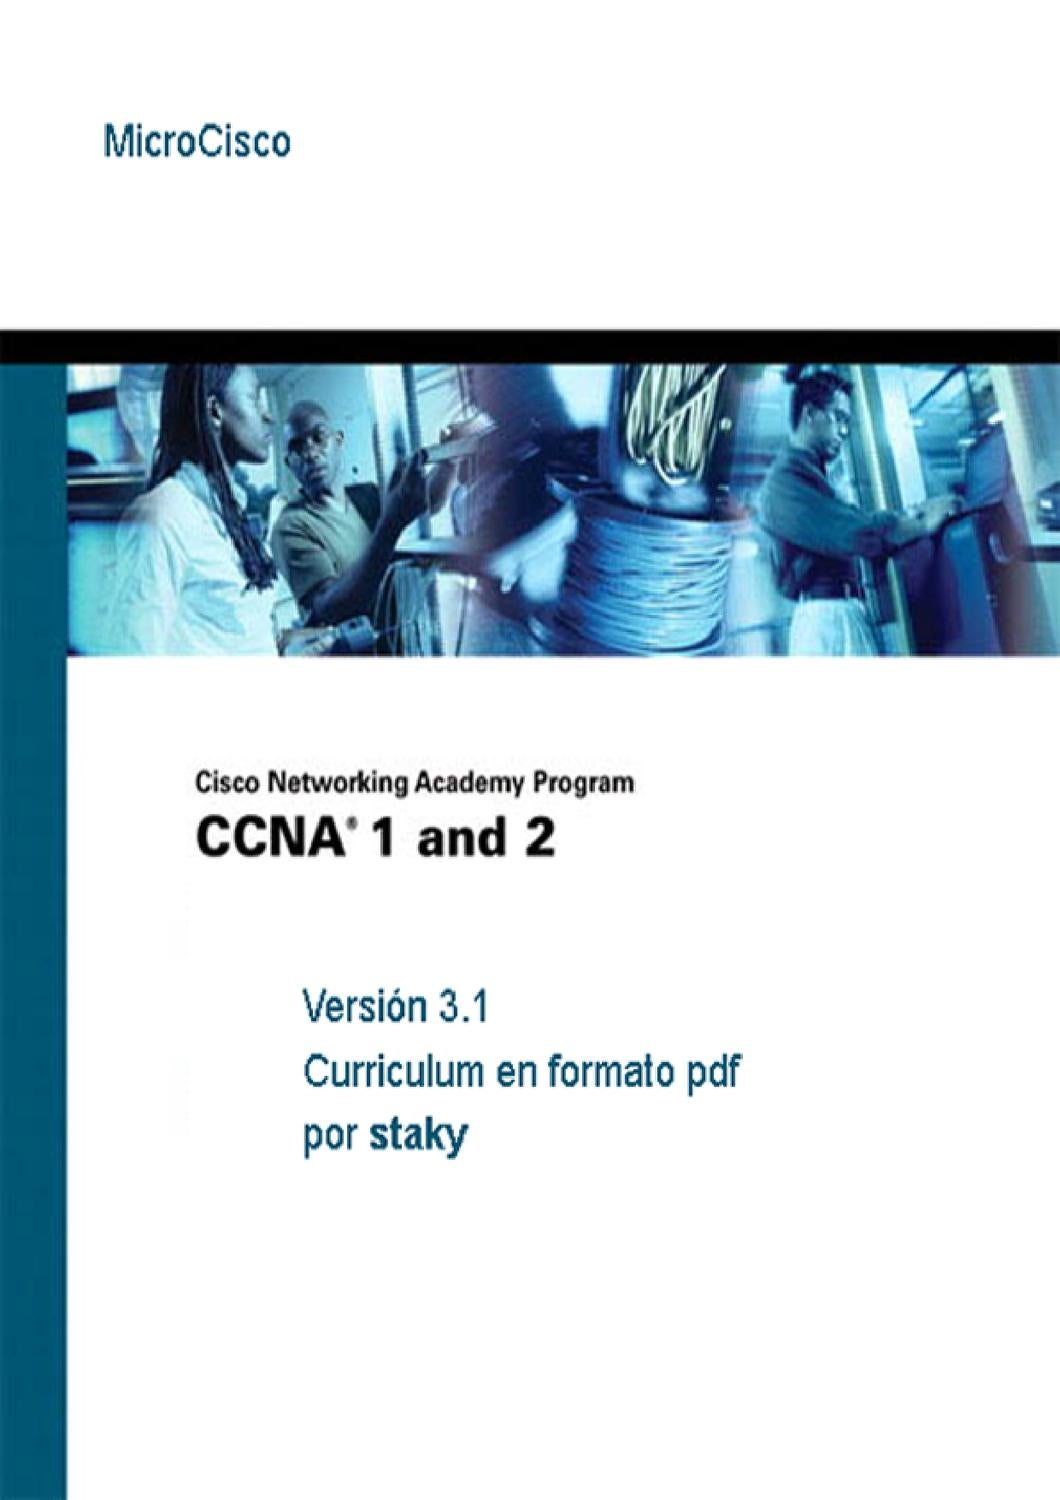 Ccna 1 Y 2 By Luciano Neira Issuu